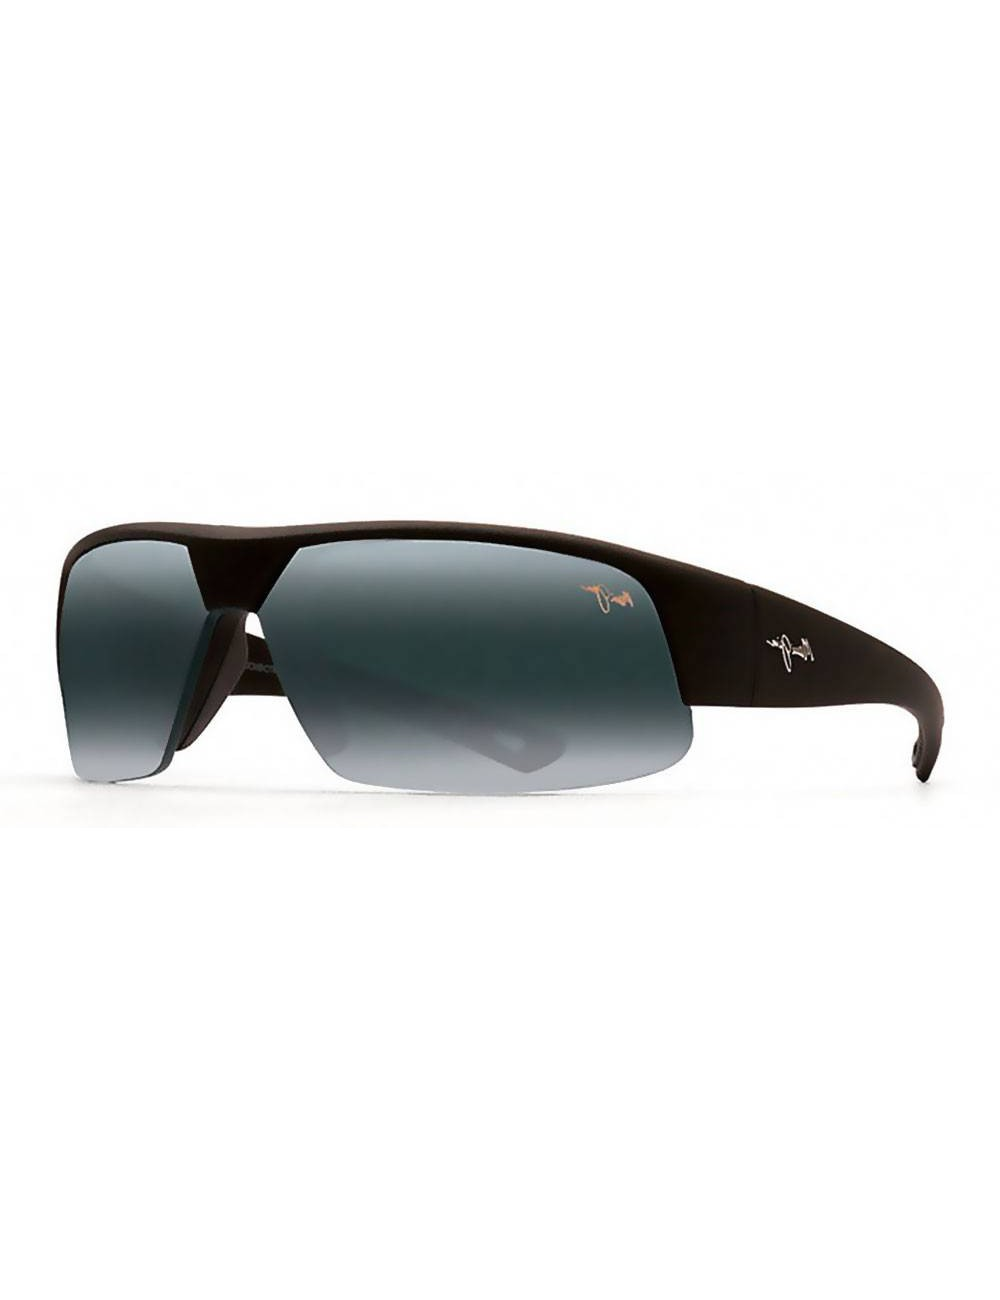 Lunettes de soleil Maui Jim Switchbacks 523-02MR | Revendeur Agréé Maui Jim | product_reduce_price